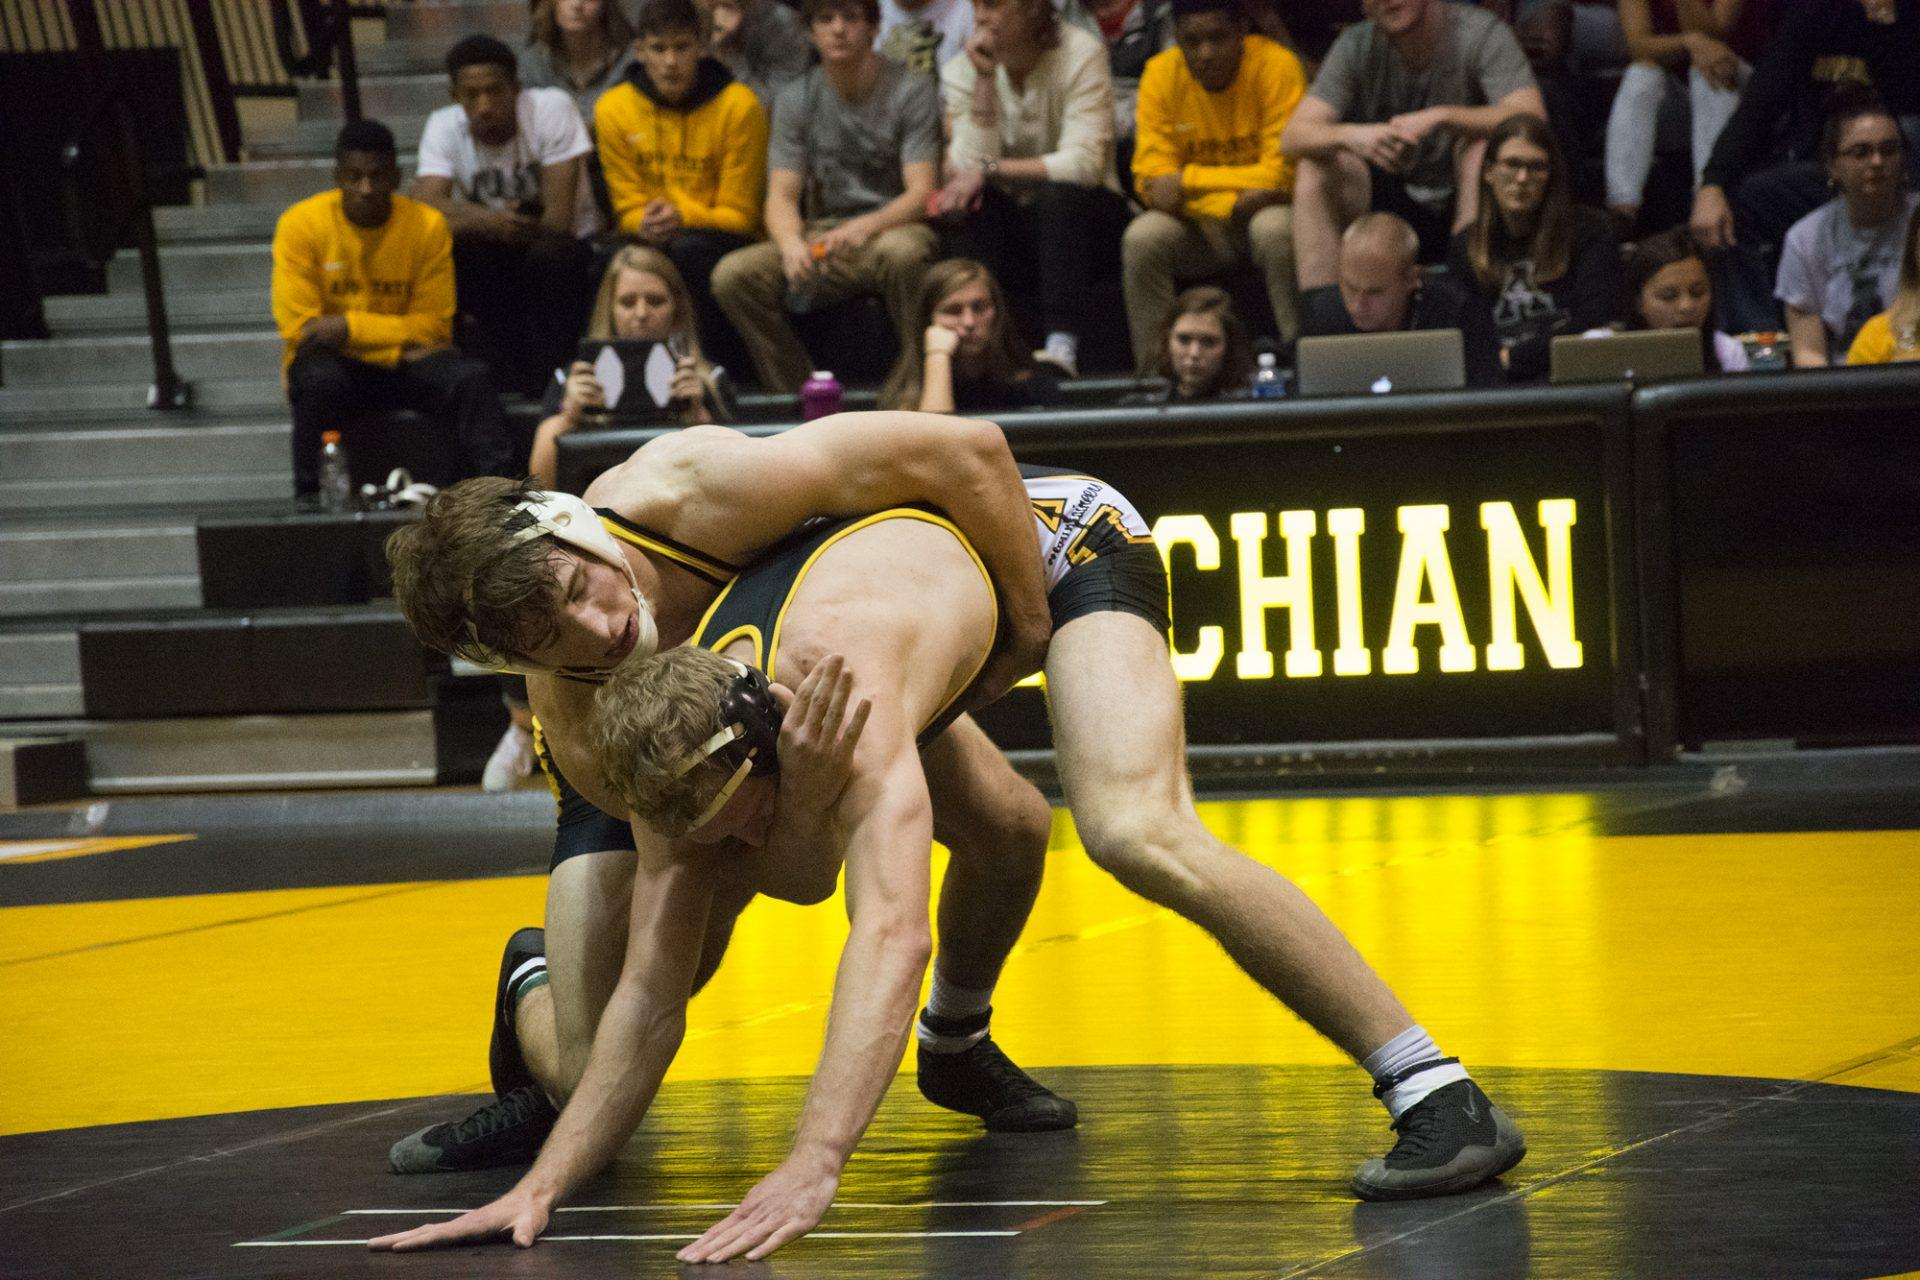 Winning start to the season for Mountaineer wrestling at Mountaineer Duals